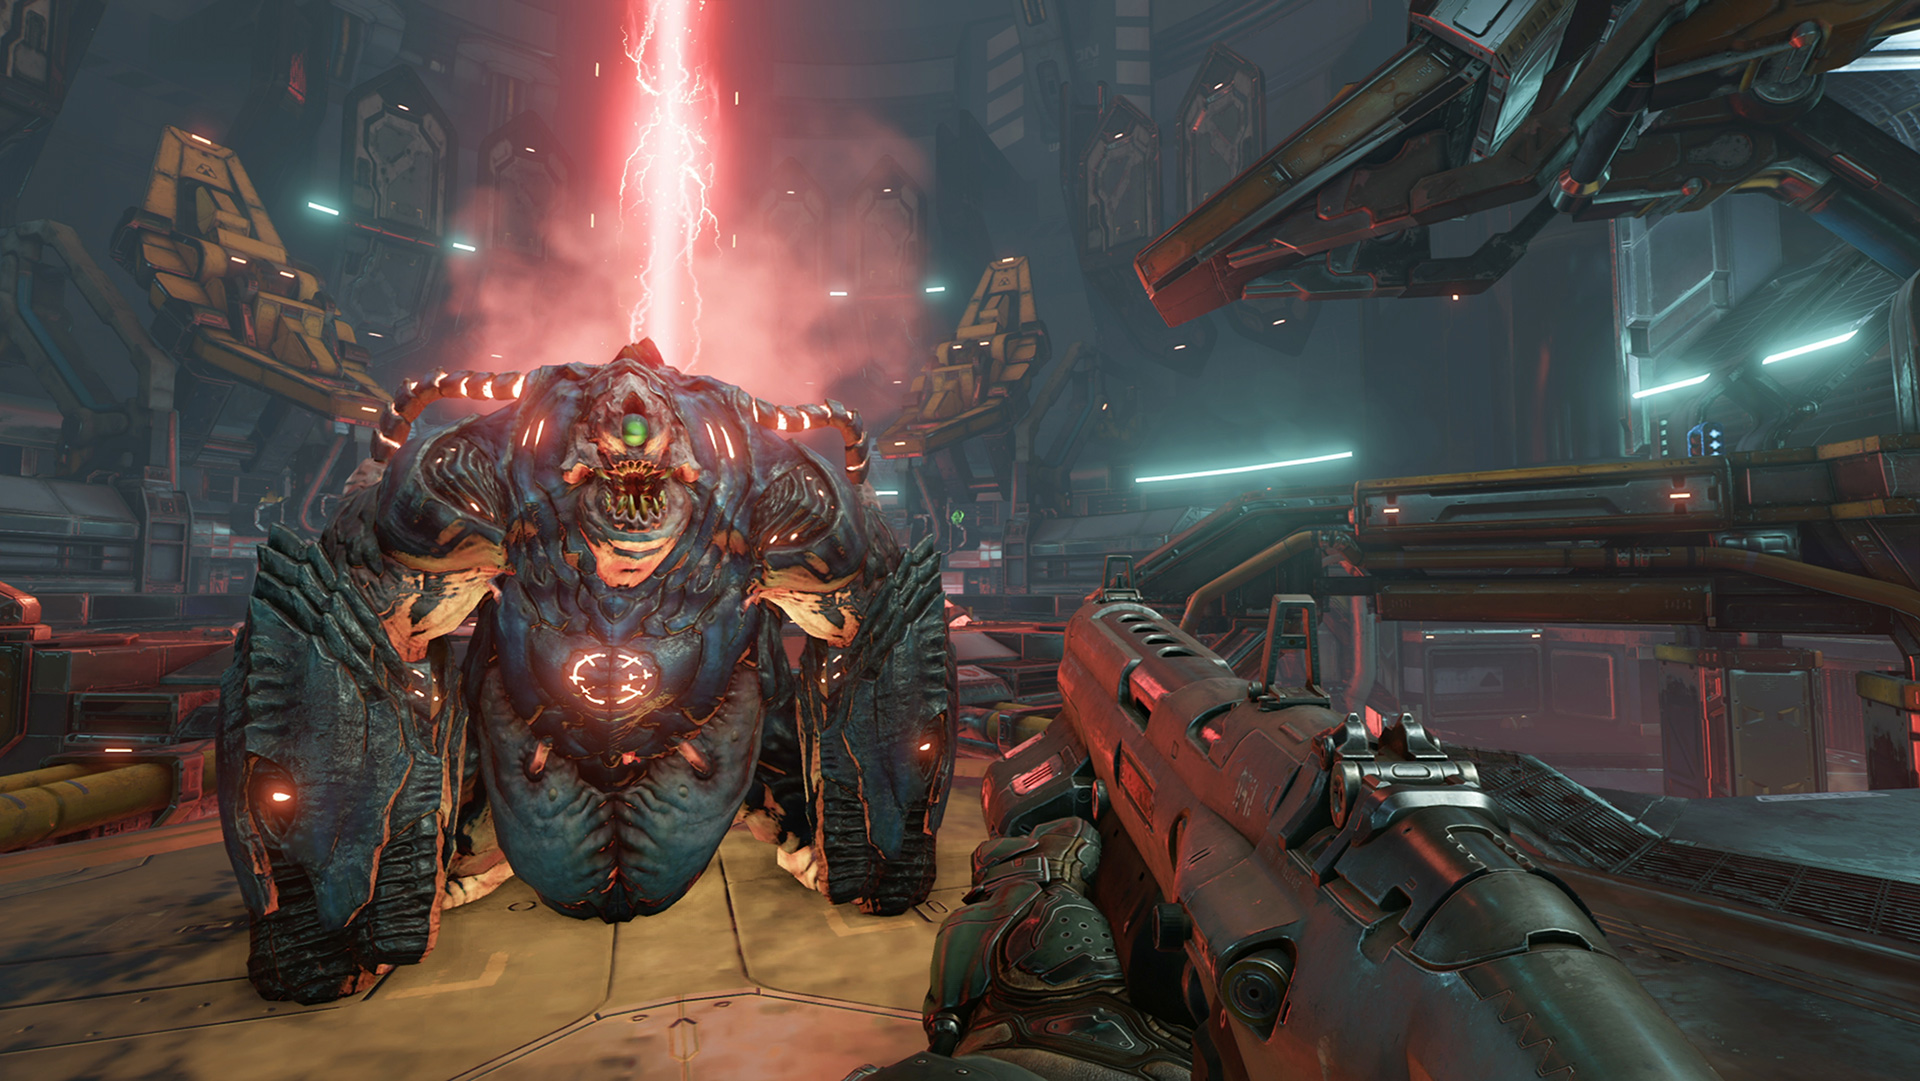 DOOM Set to Receive 4K Overhaul for Consoles